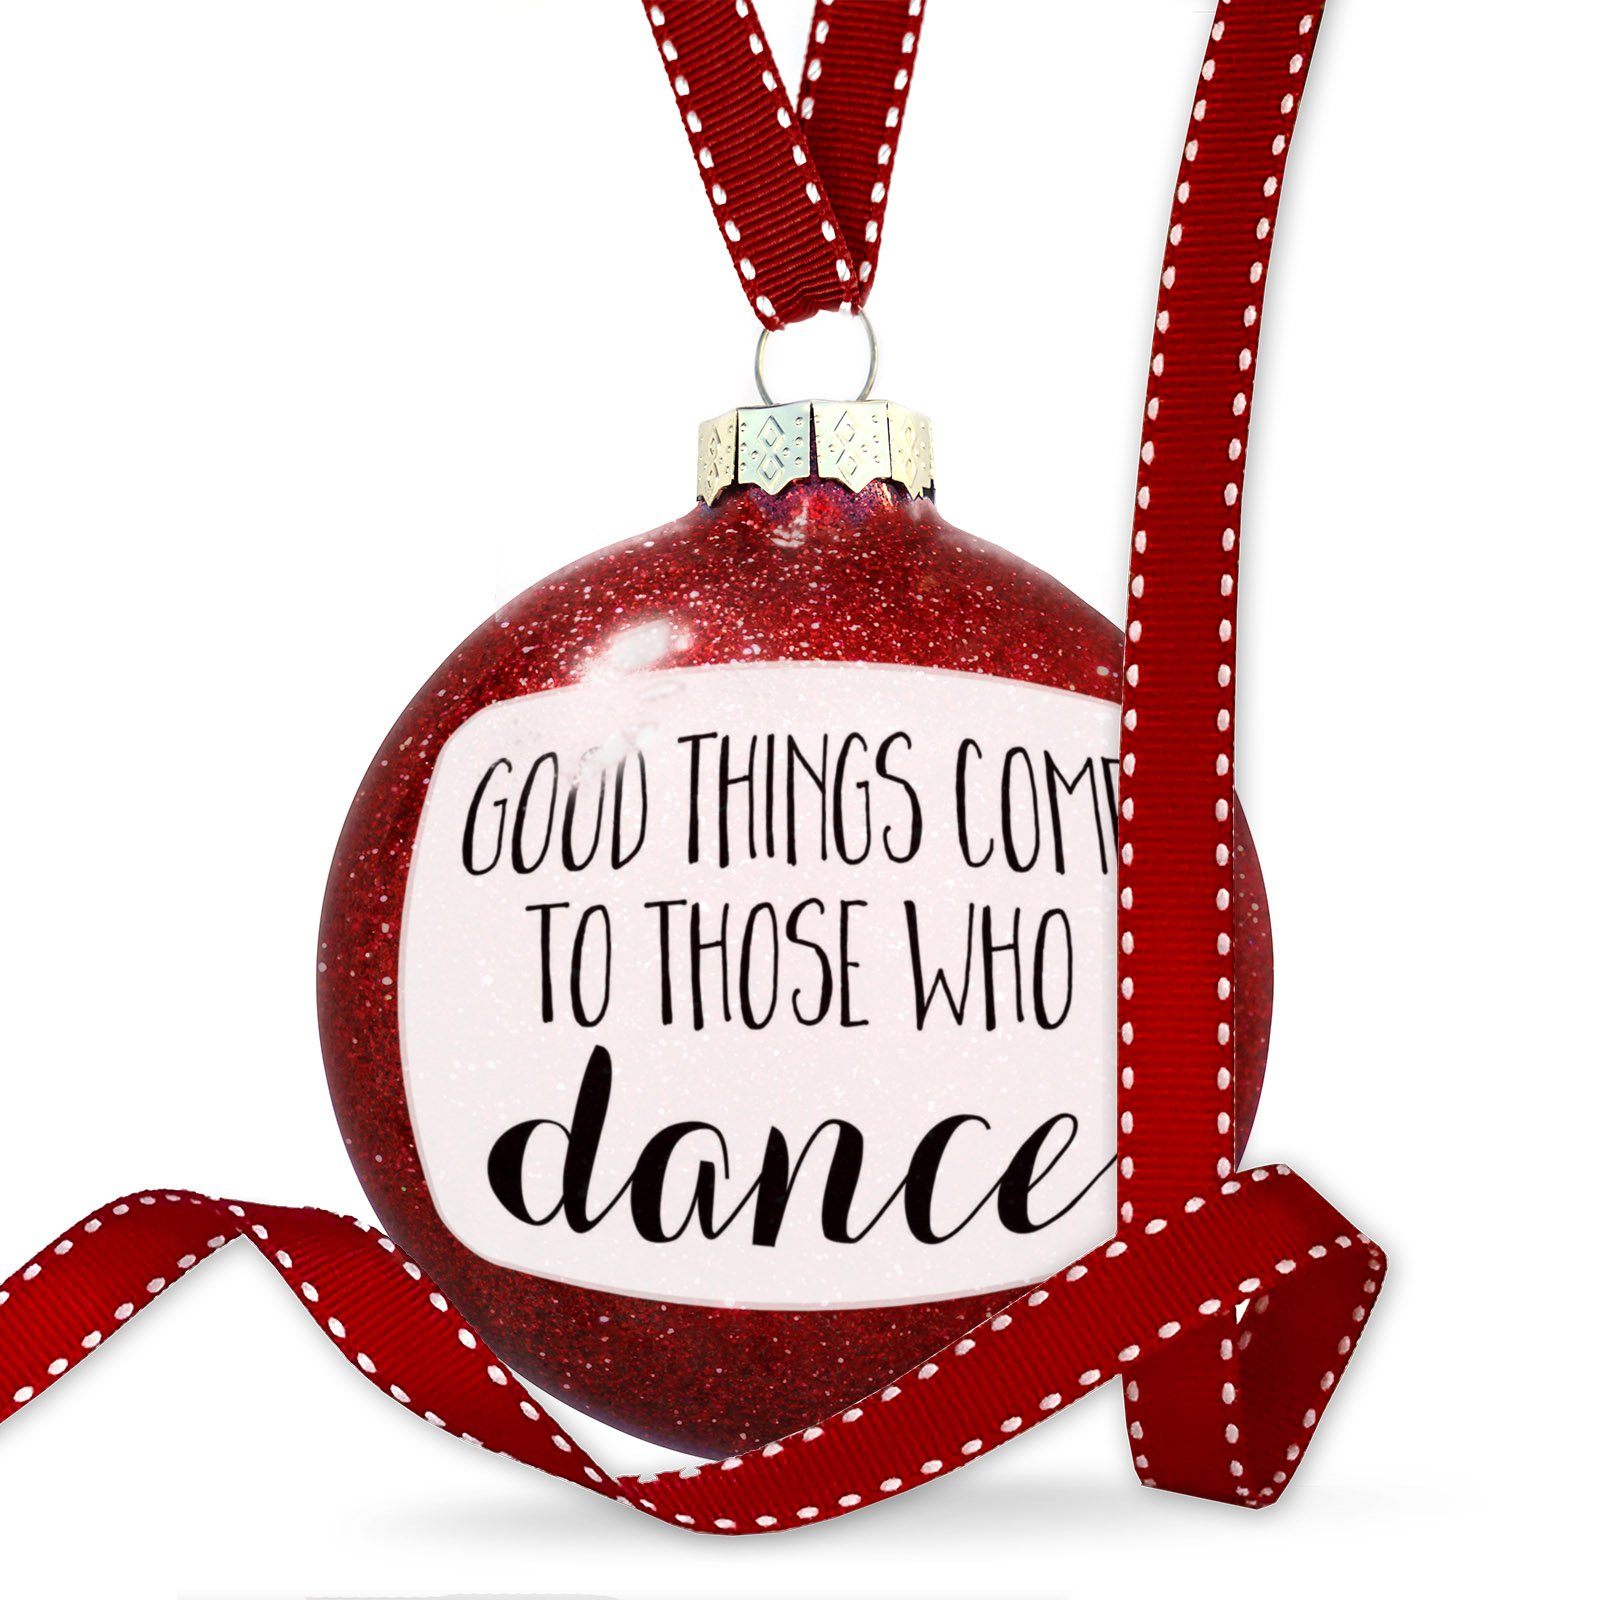 Christmas Decoration Good Things Come to Those Who Dance Funny Saying Ornament